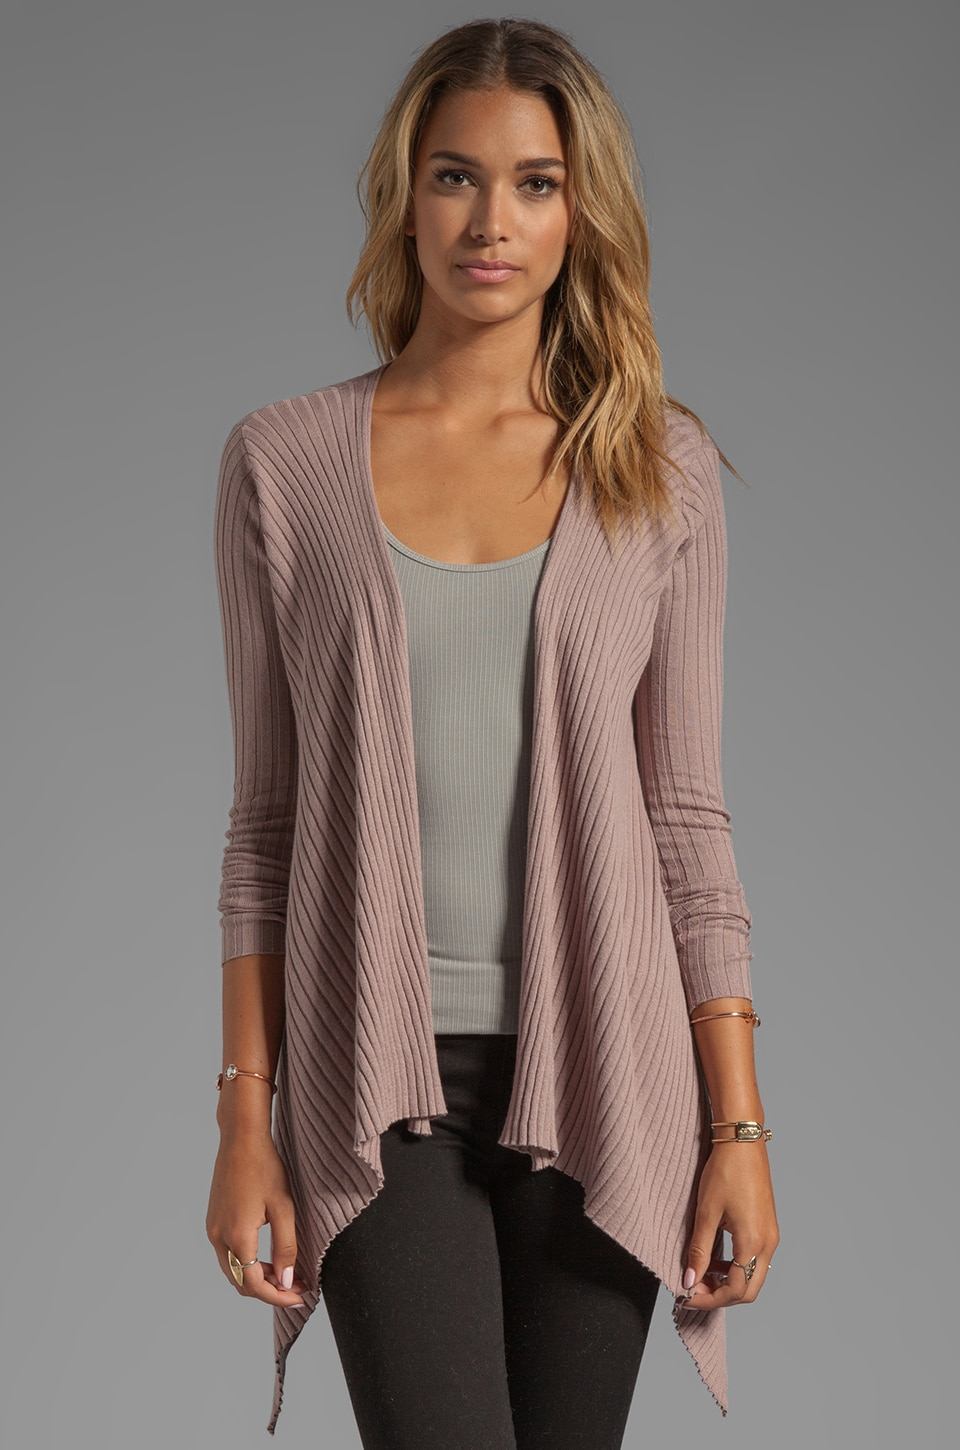 Vintageous Luxe Wrap Cardi in Lilac